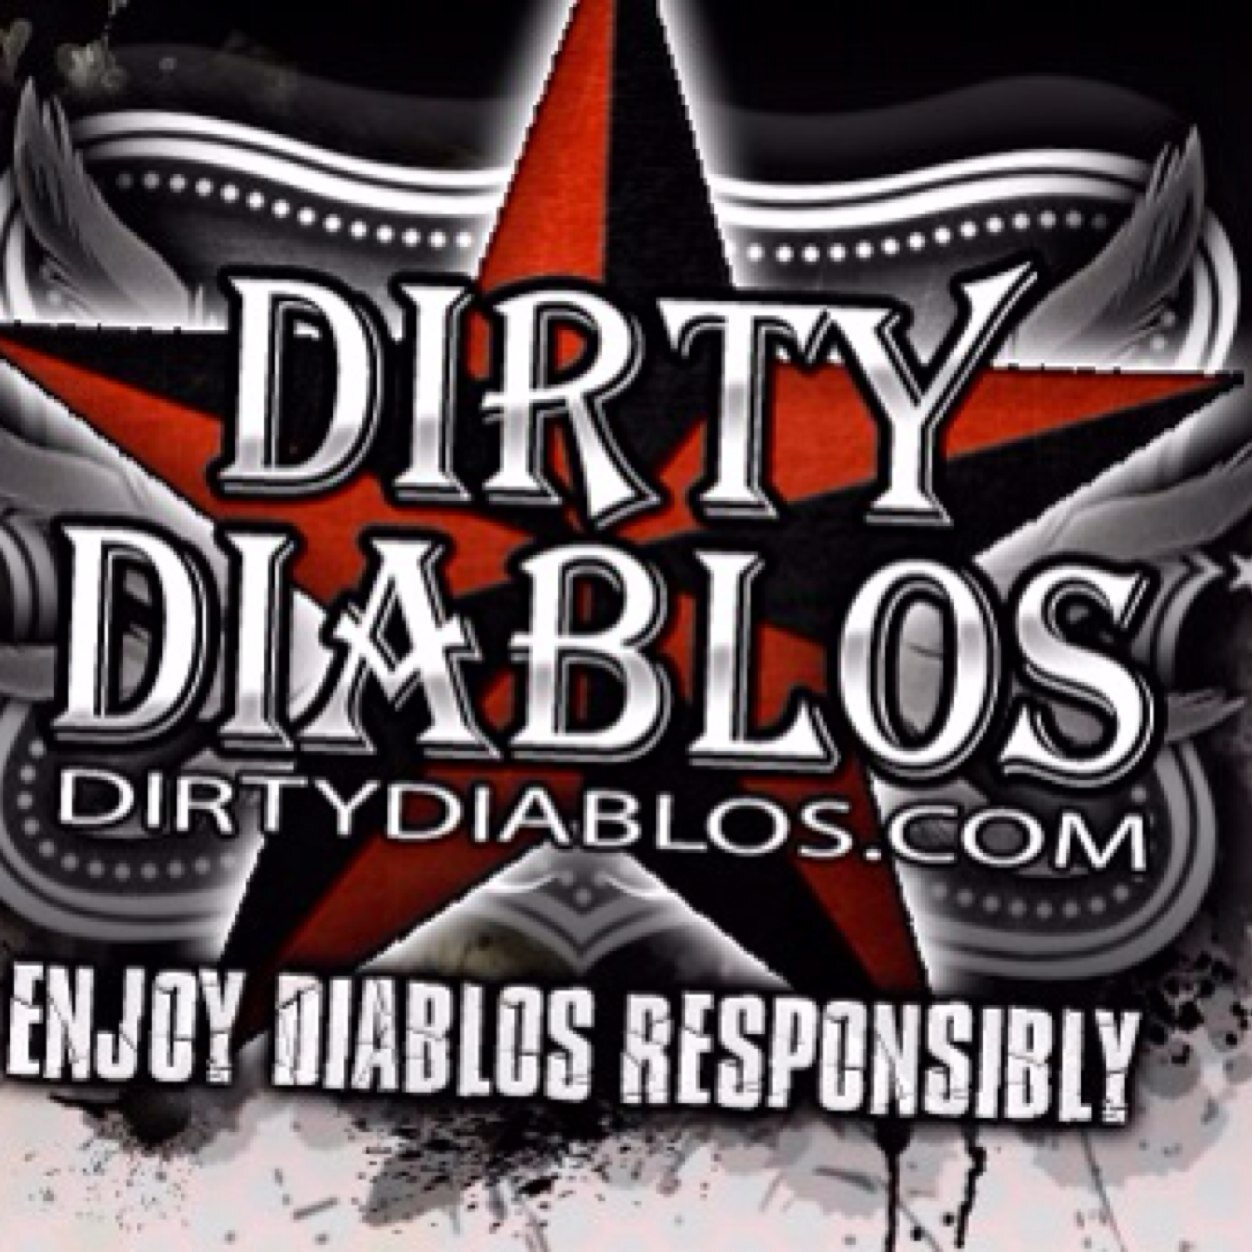 Dirty Diablos